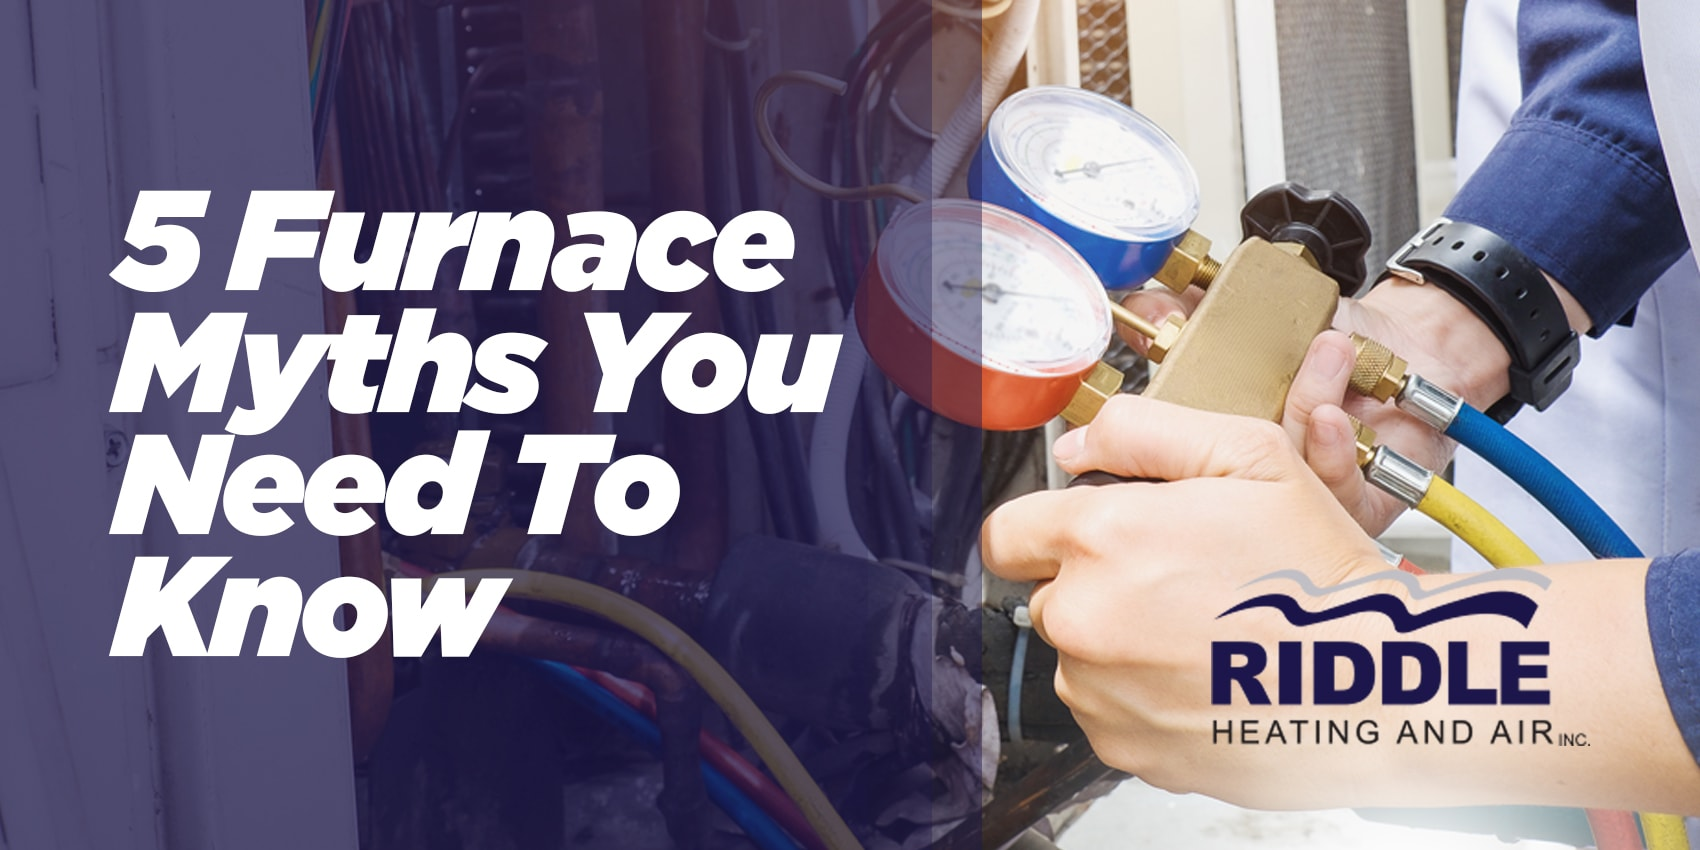 5 Furnace Myths You Need To Know